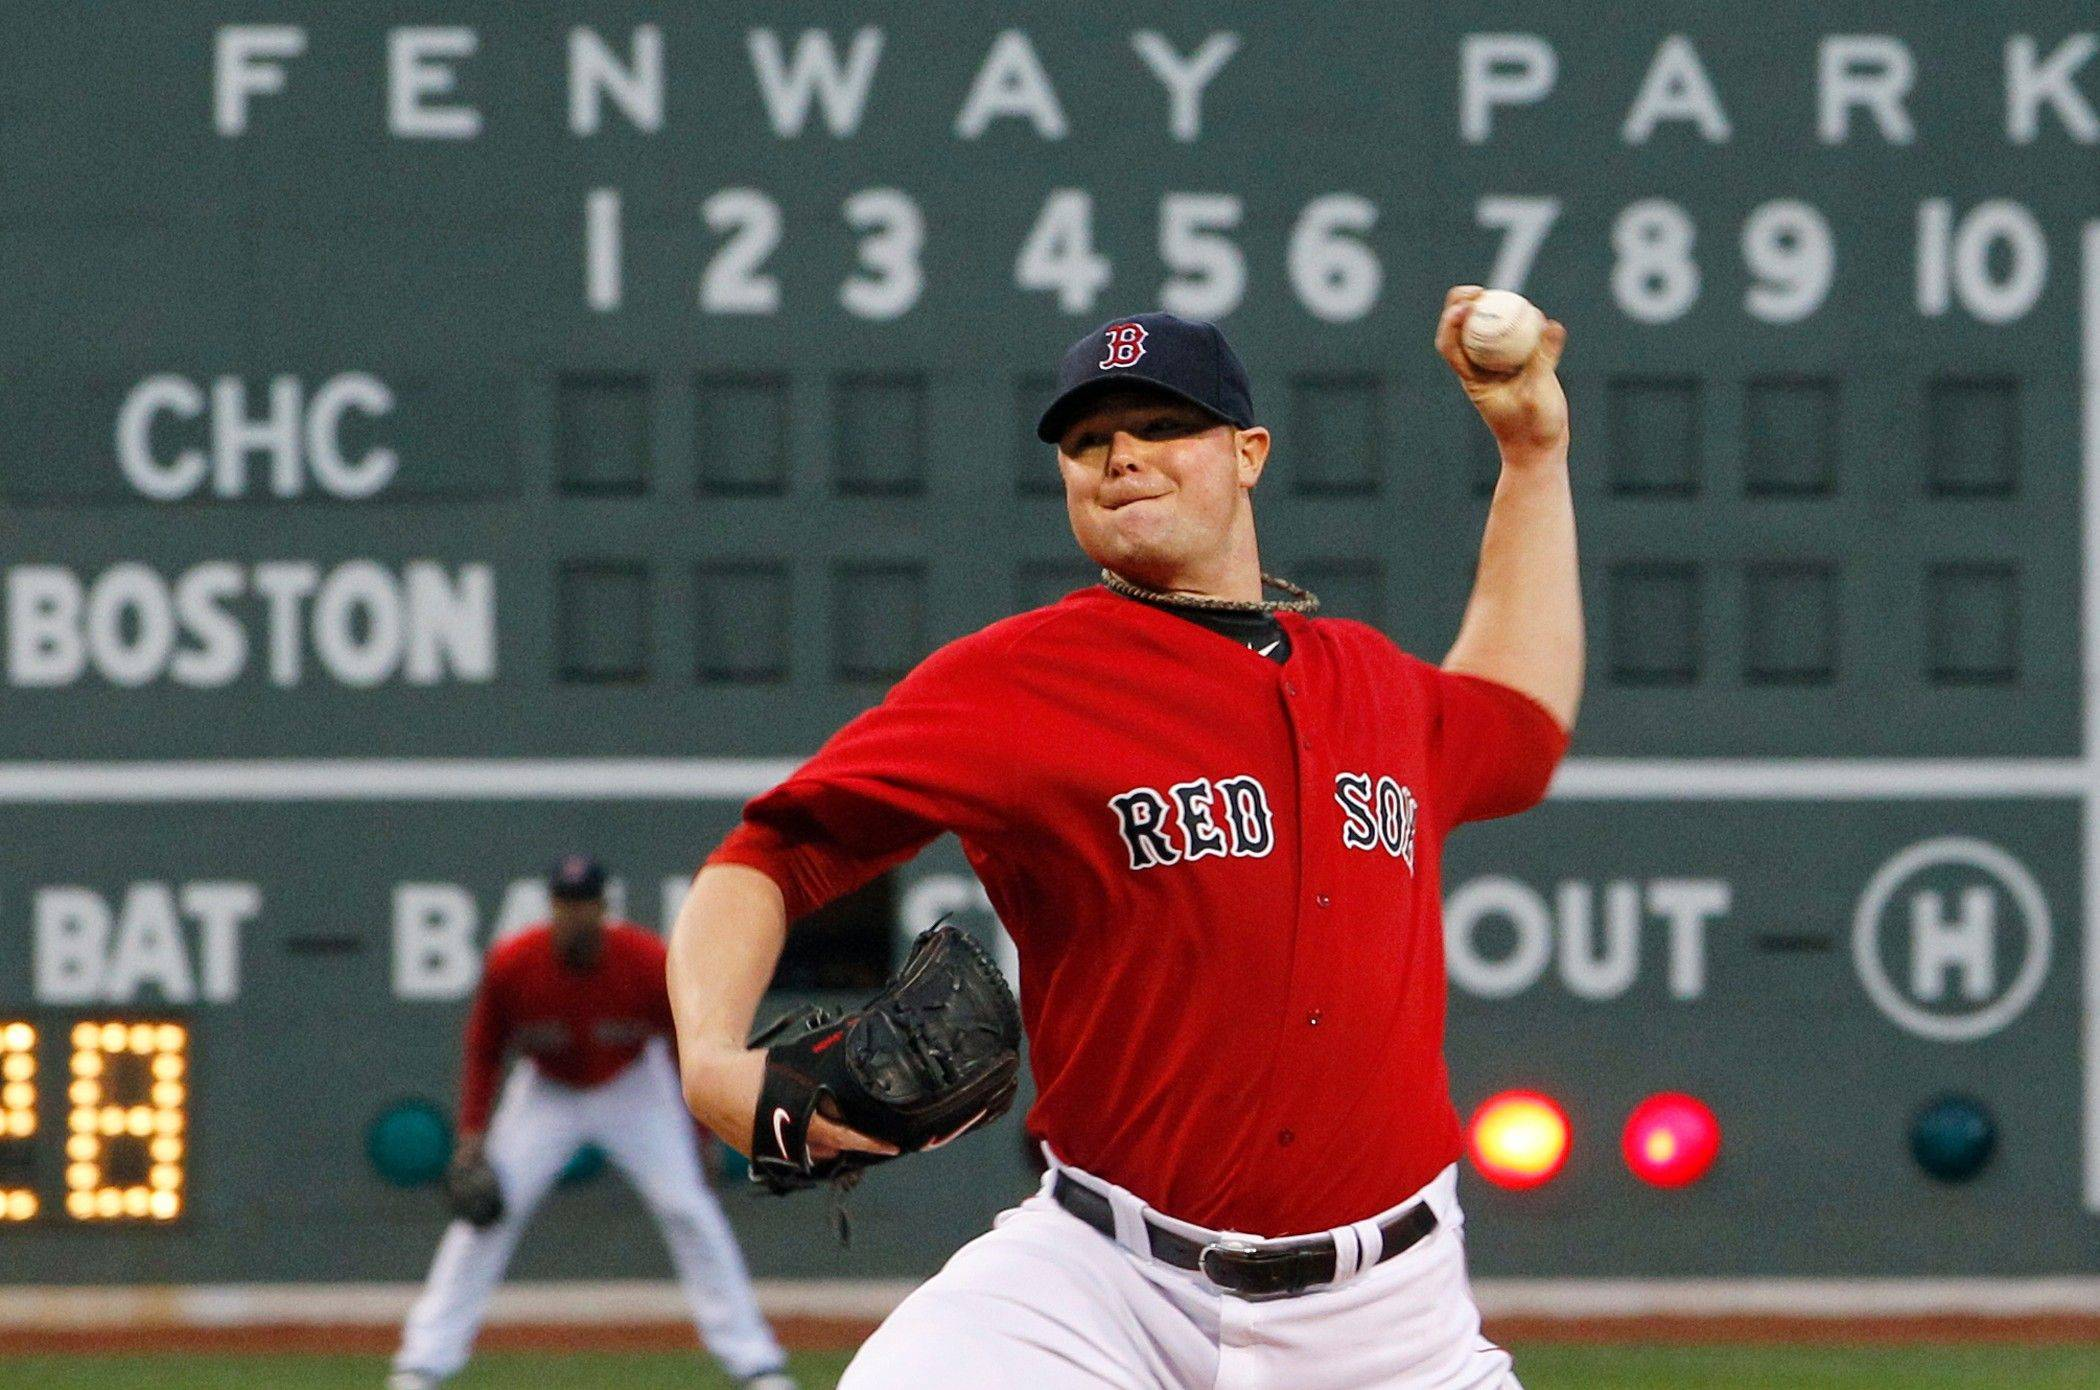 Boston Red Sox starting pitcher Jon Lester delivers to the Chicago Cubs in the first inning of an interleague baseball game at Fenway Park in Boston Friday, May 20, 2011.